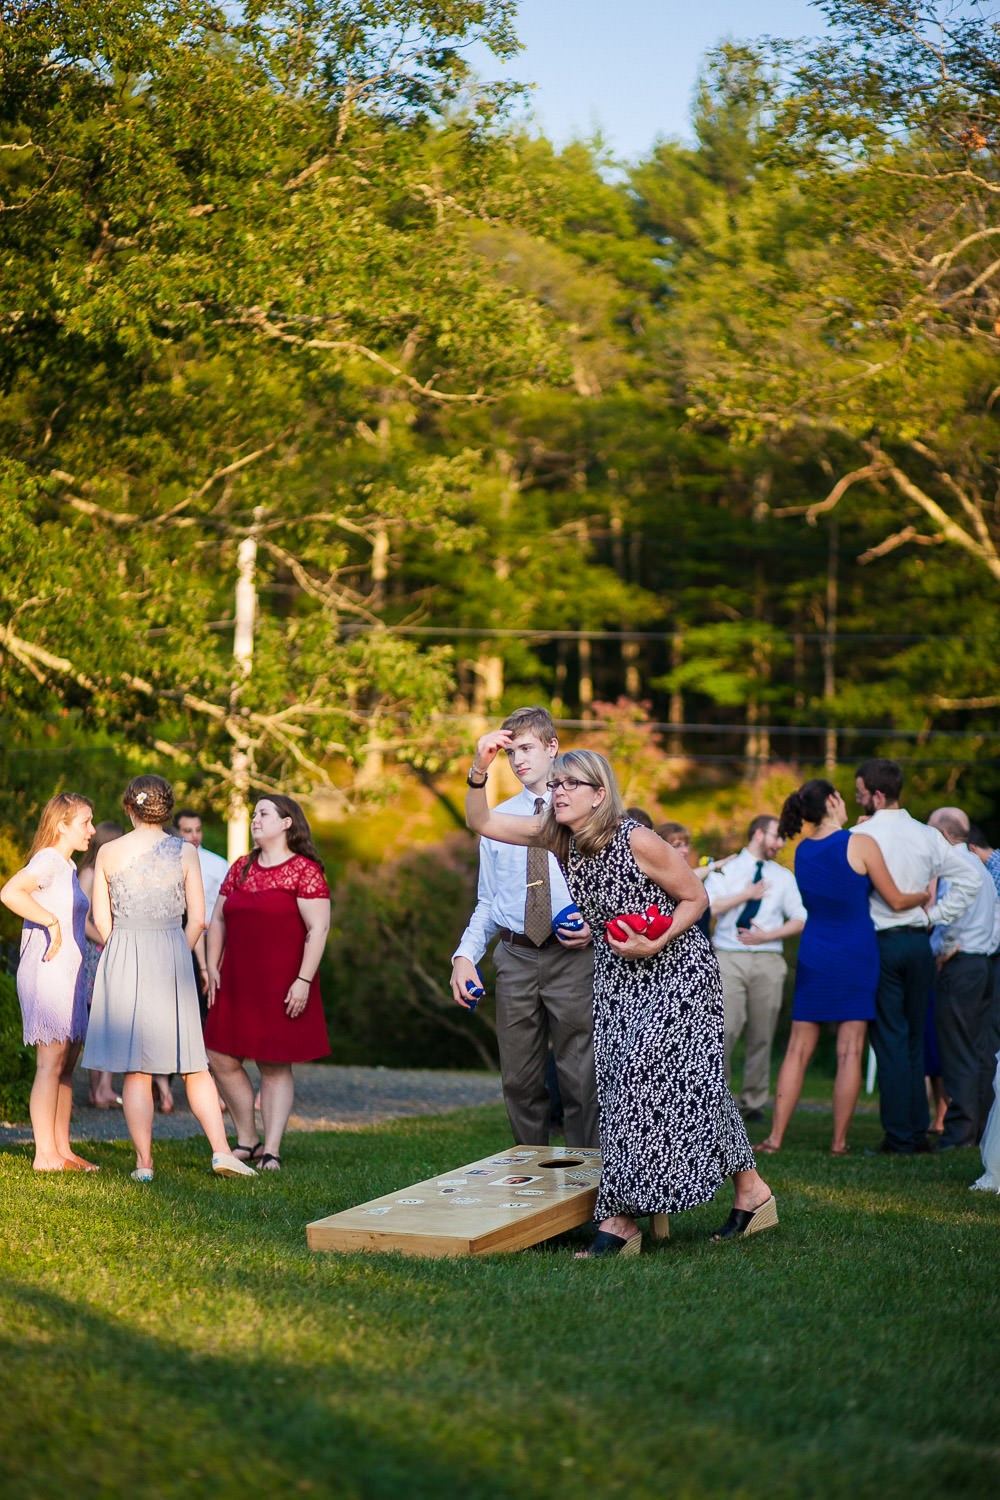 hartmans herb farm weddings, people enjoying the lawn games, casual wedding